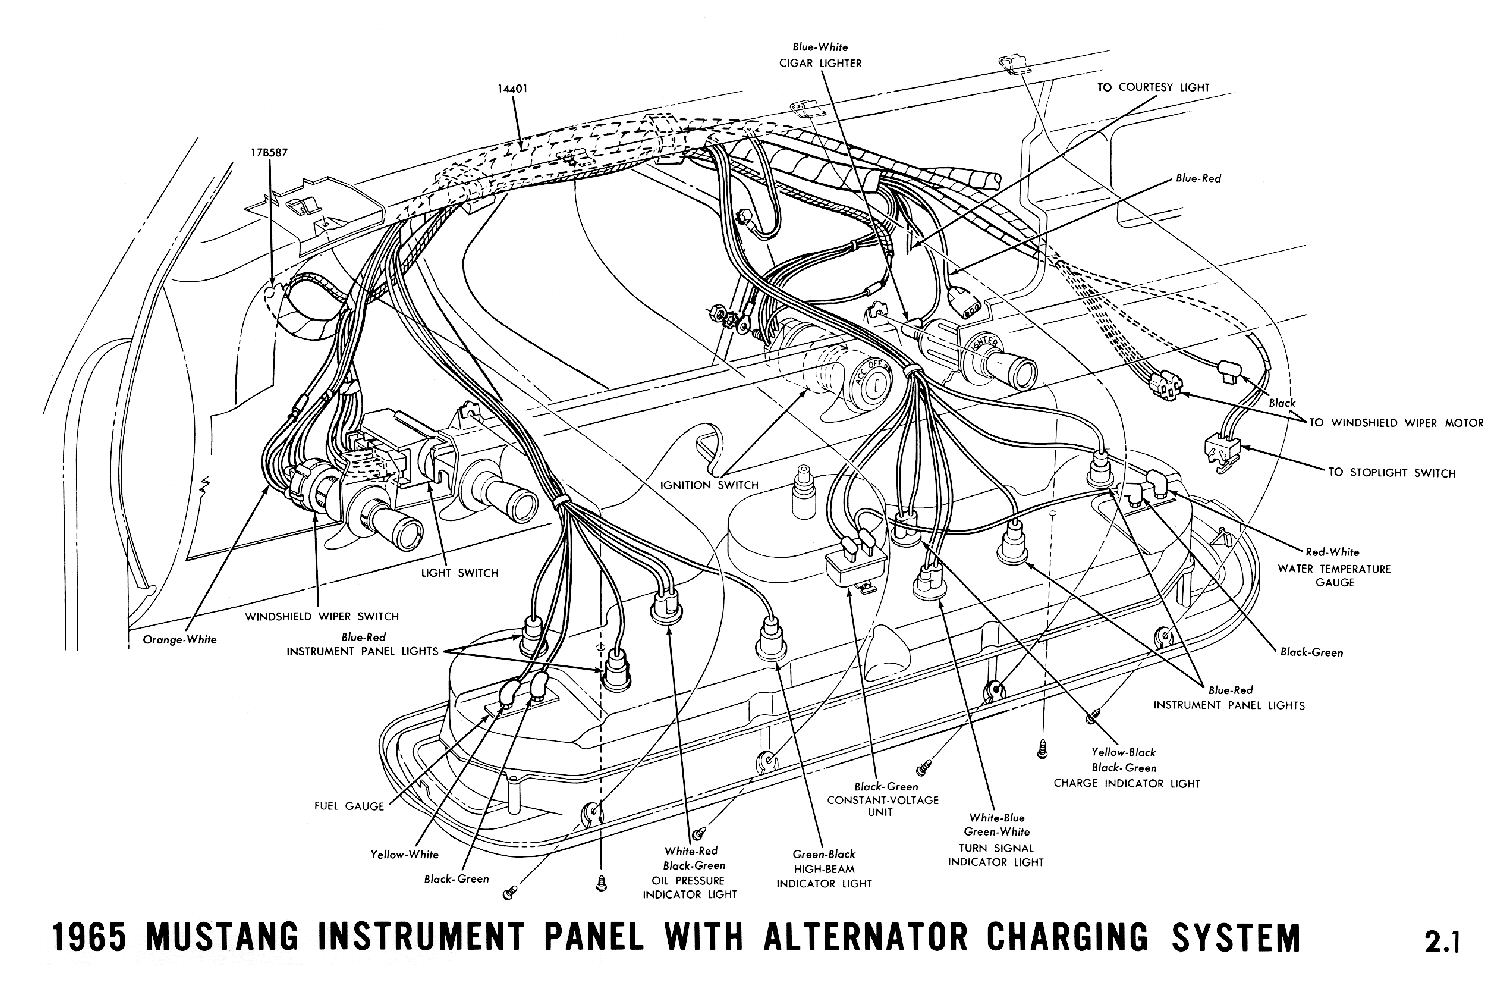 1965a 1965 mustang wiring diagrams average joe restoration 1965 ford f100 wiring schematics at crackthecode.co